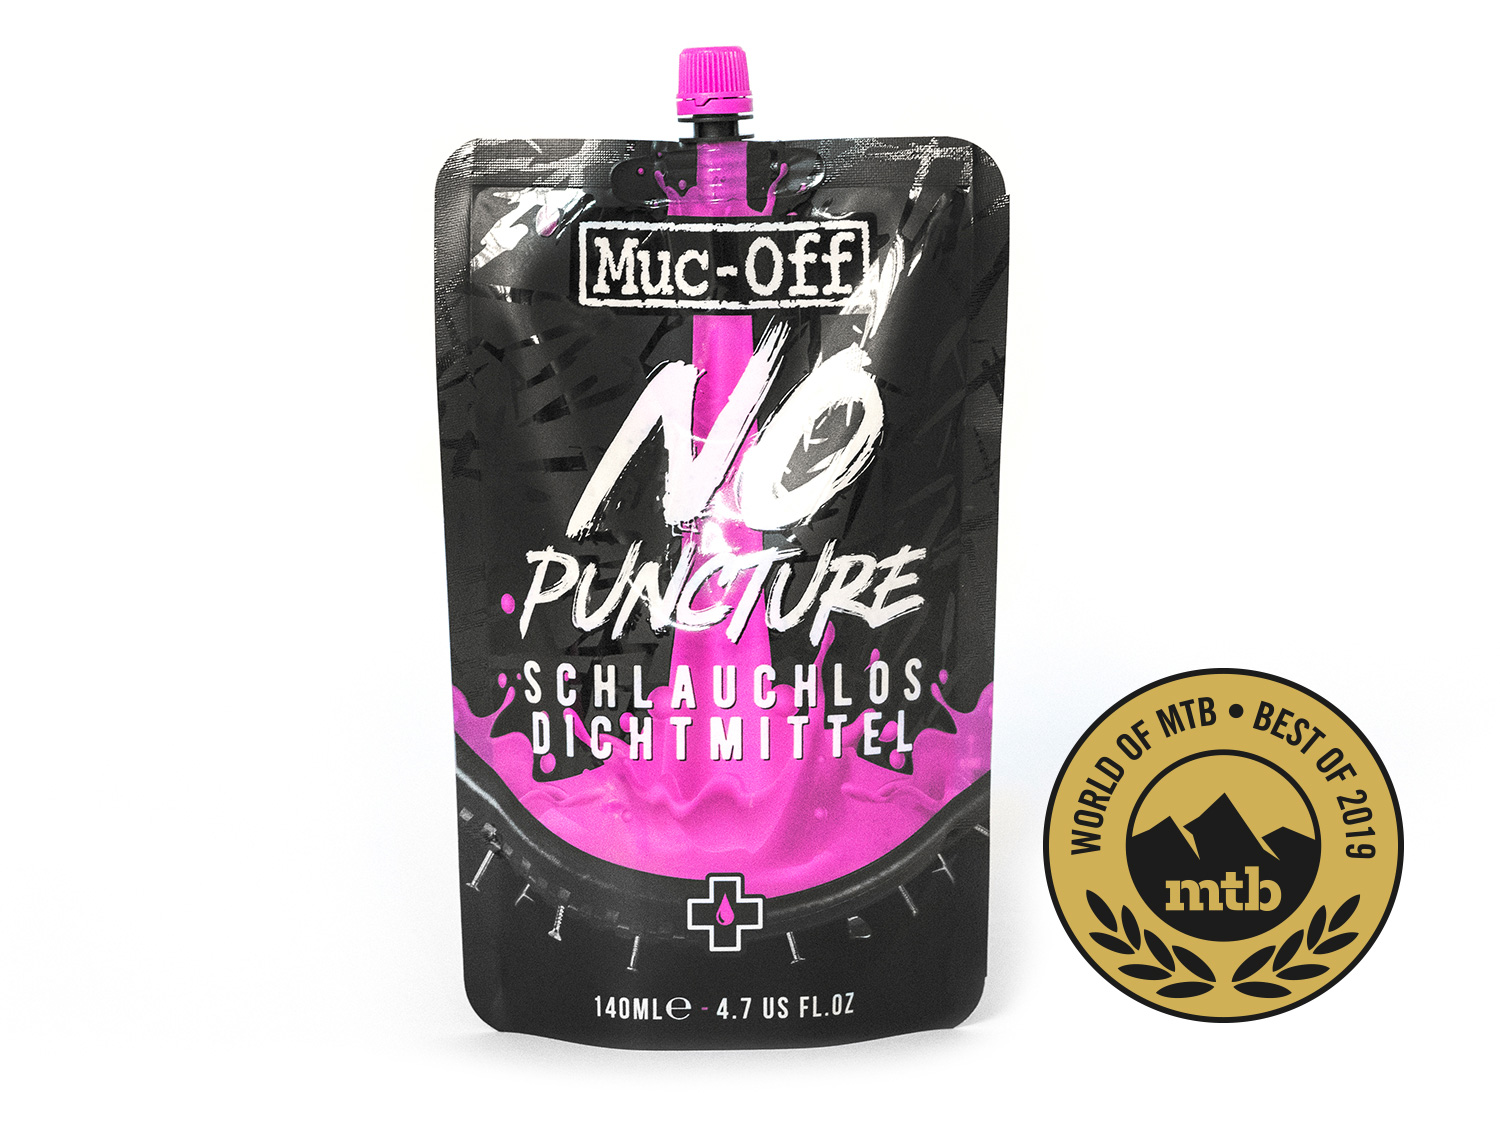 Muc-Off Tubeless Dichtmittel 140ml